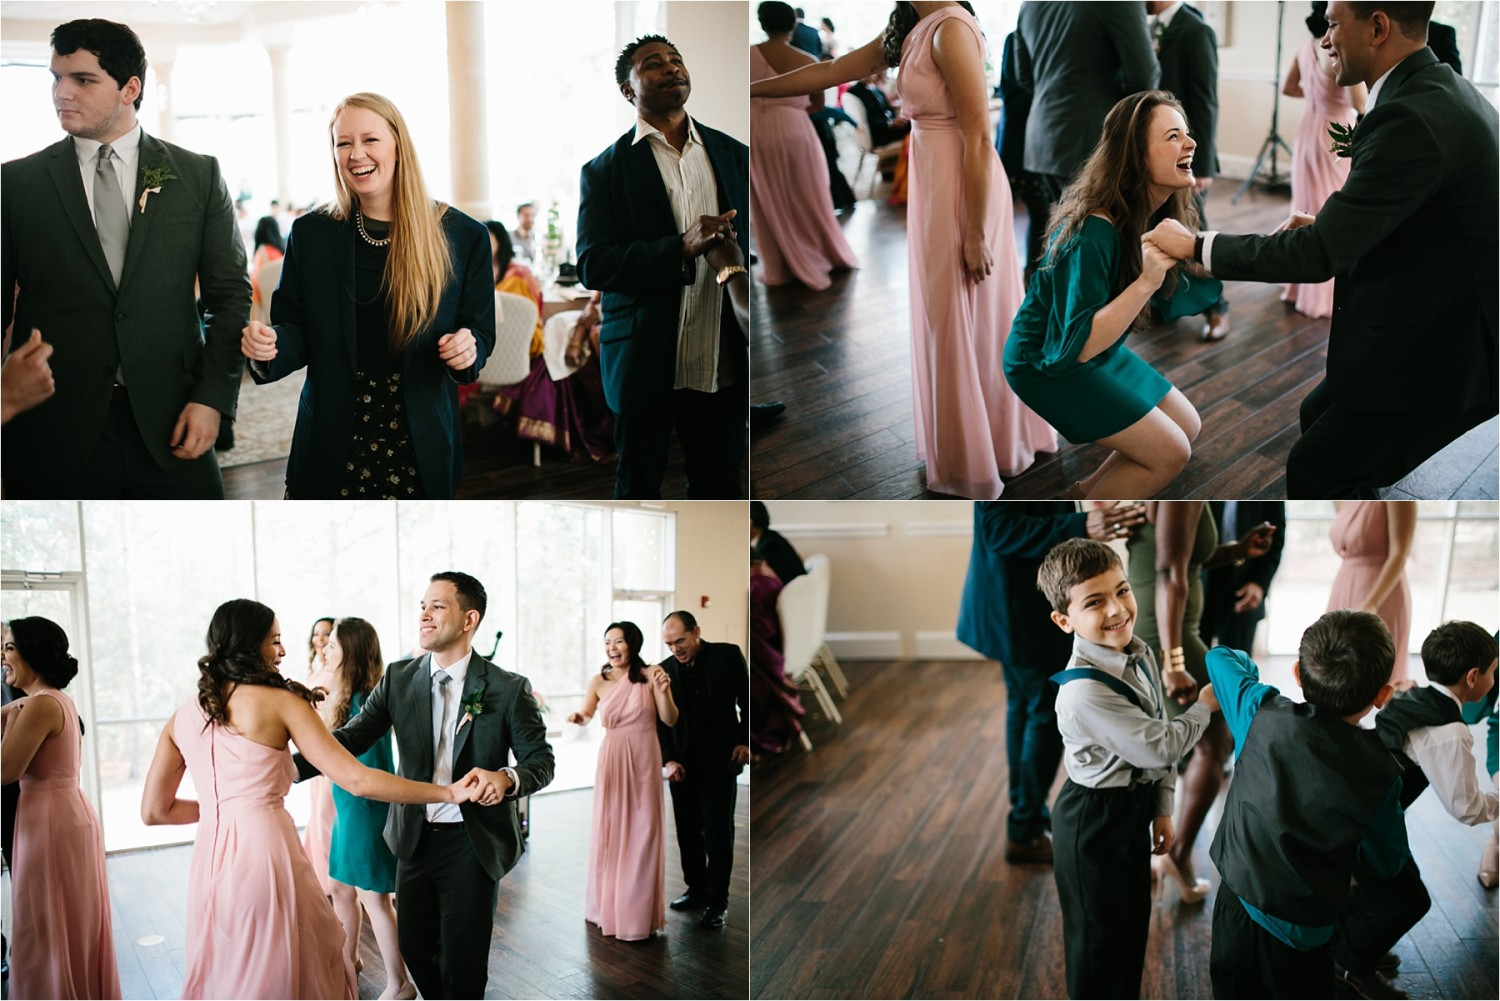 Jeanpaul + Ann __ a colorful wedding at Ashton Gardens in Houston TX by North Texas Wedding Photographer Rachel Meagan Photography _ 41